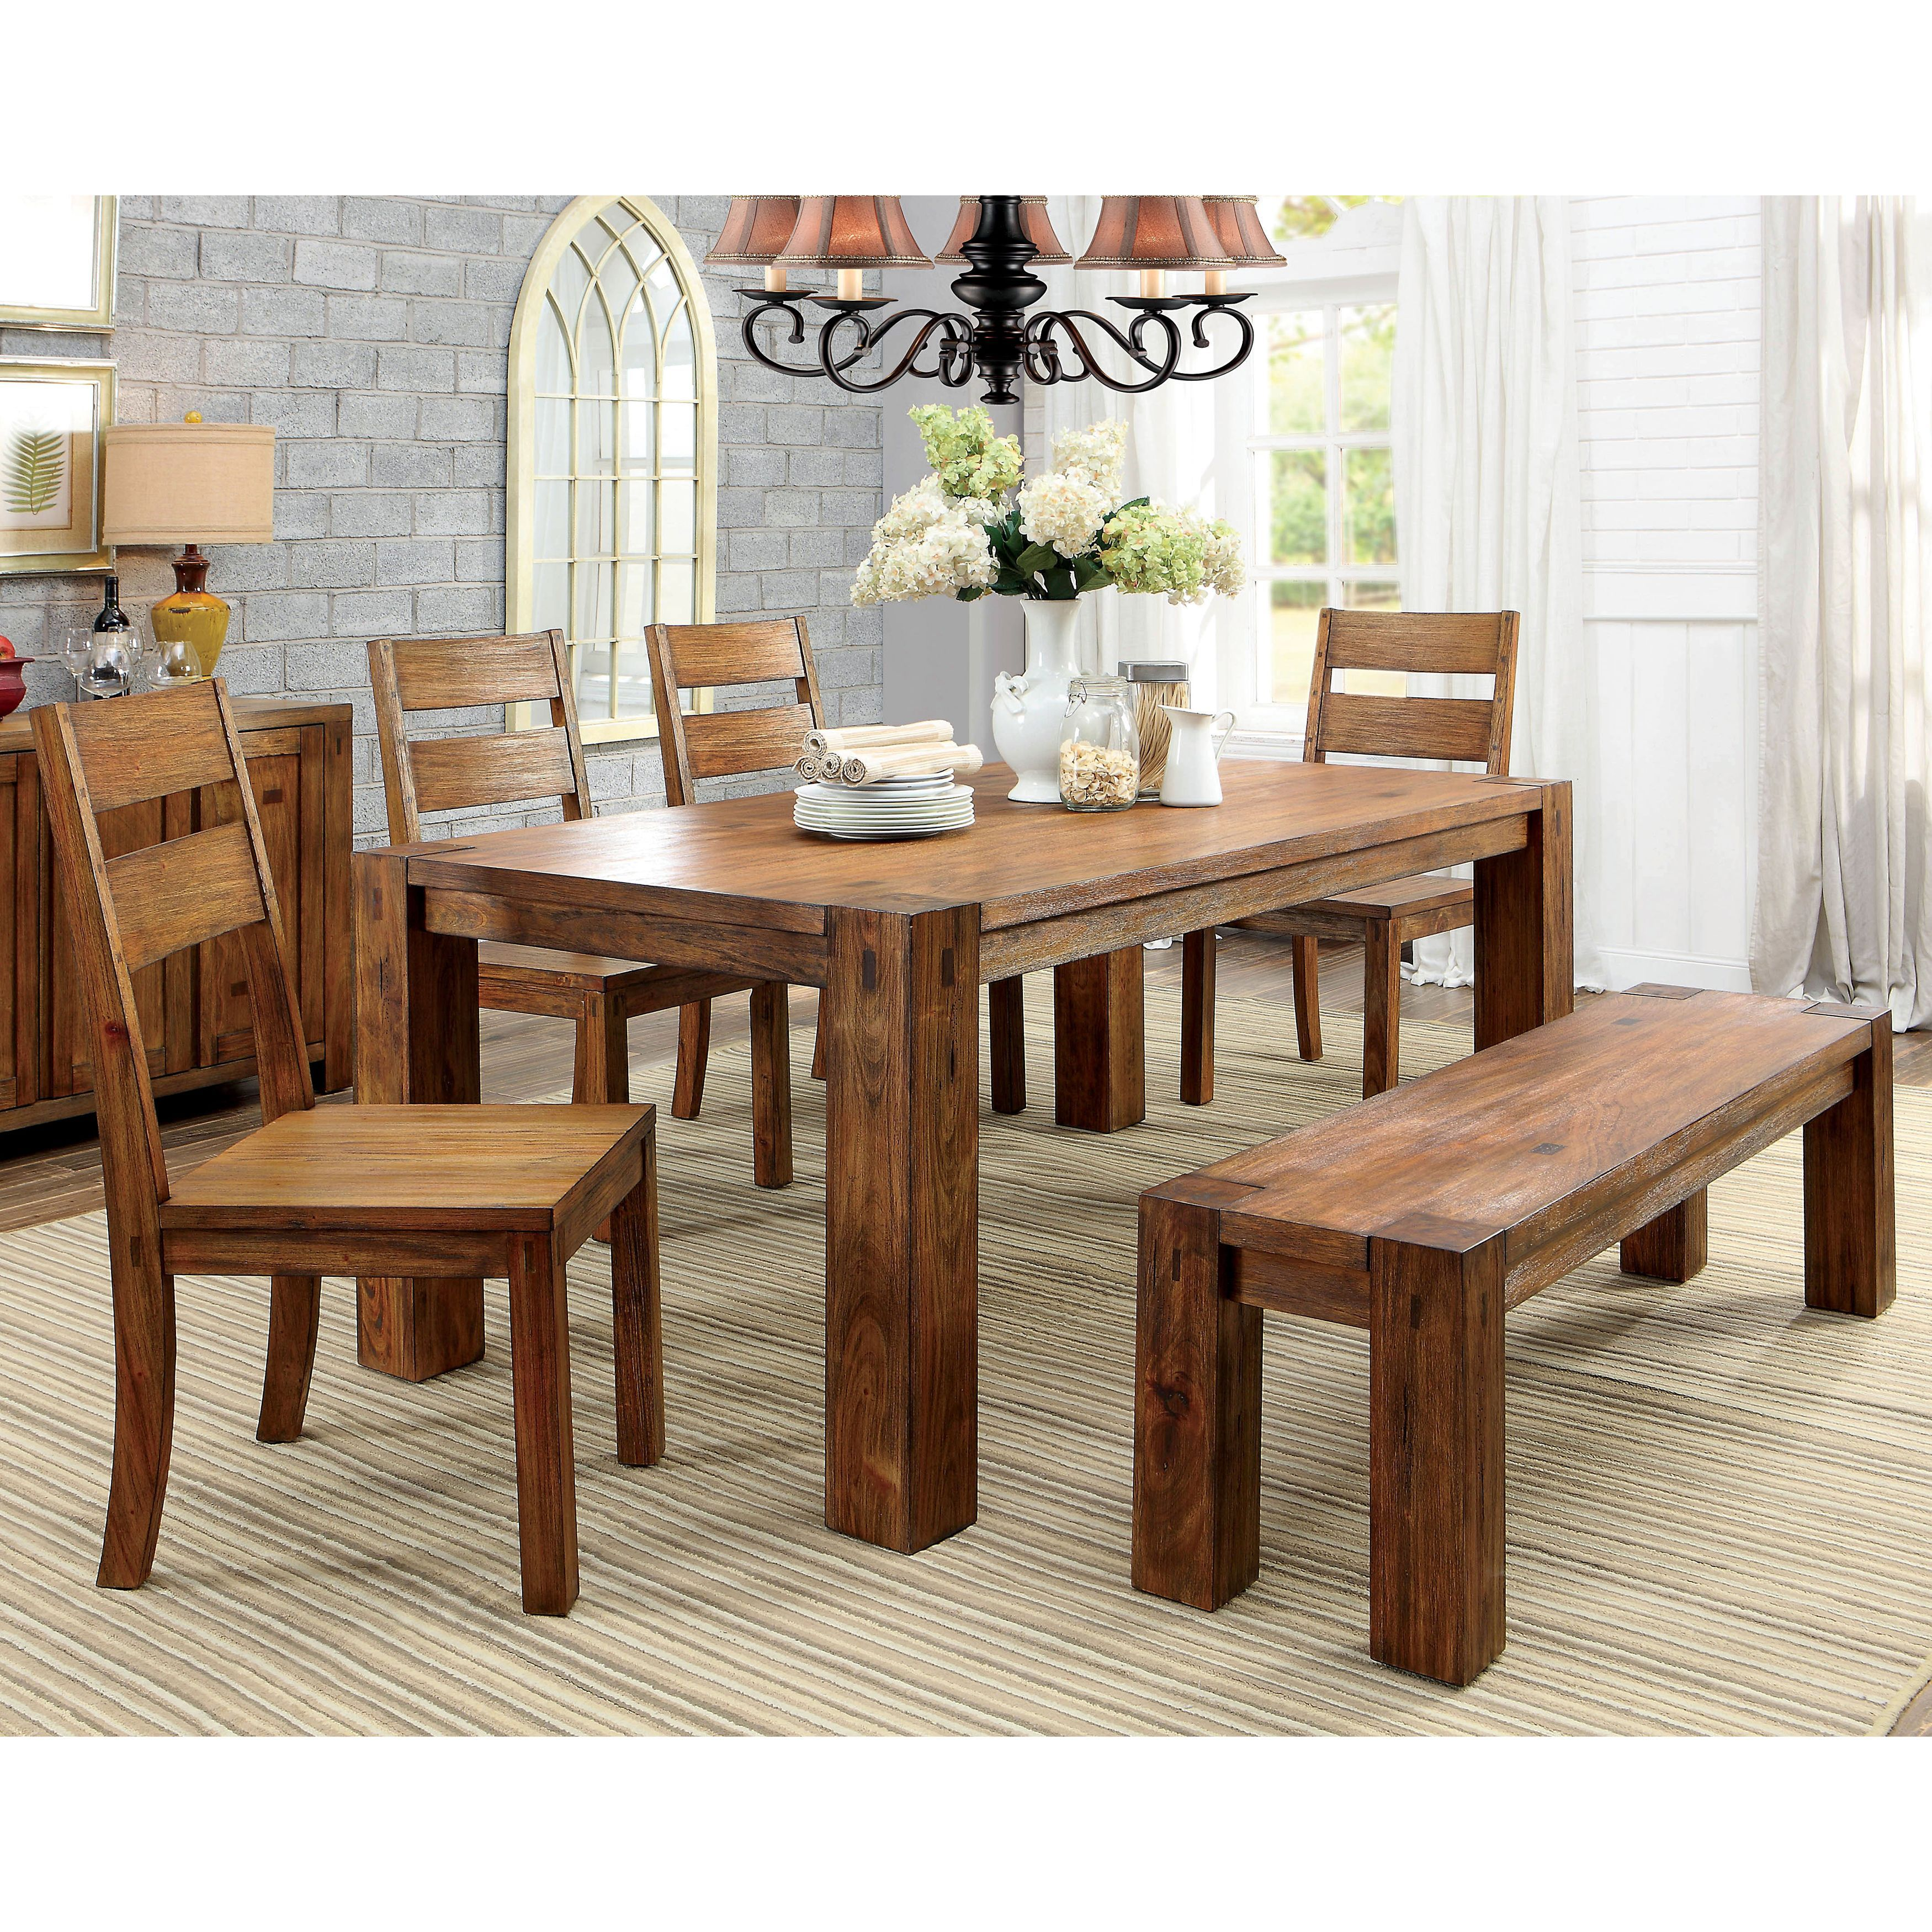 Furniture Of America Clarks Farmhouse Style Dining Table  Solid Mesmerizing Farm Style Dining Room Table Review